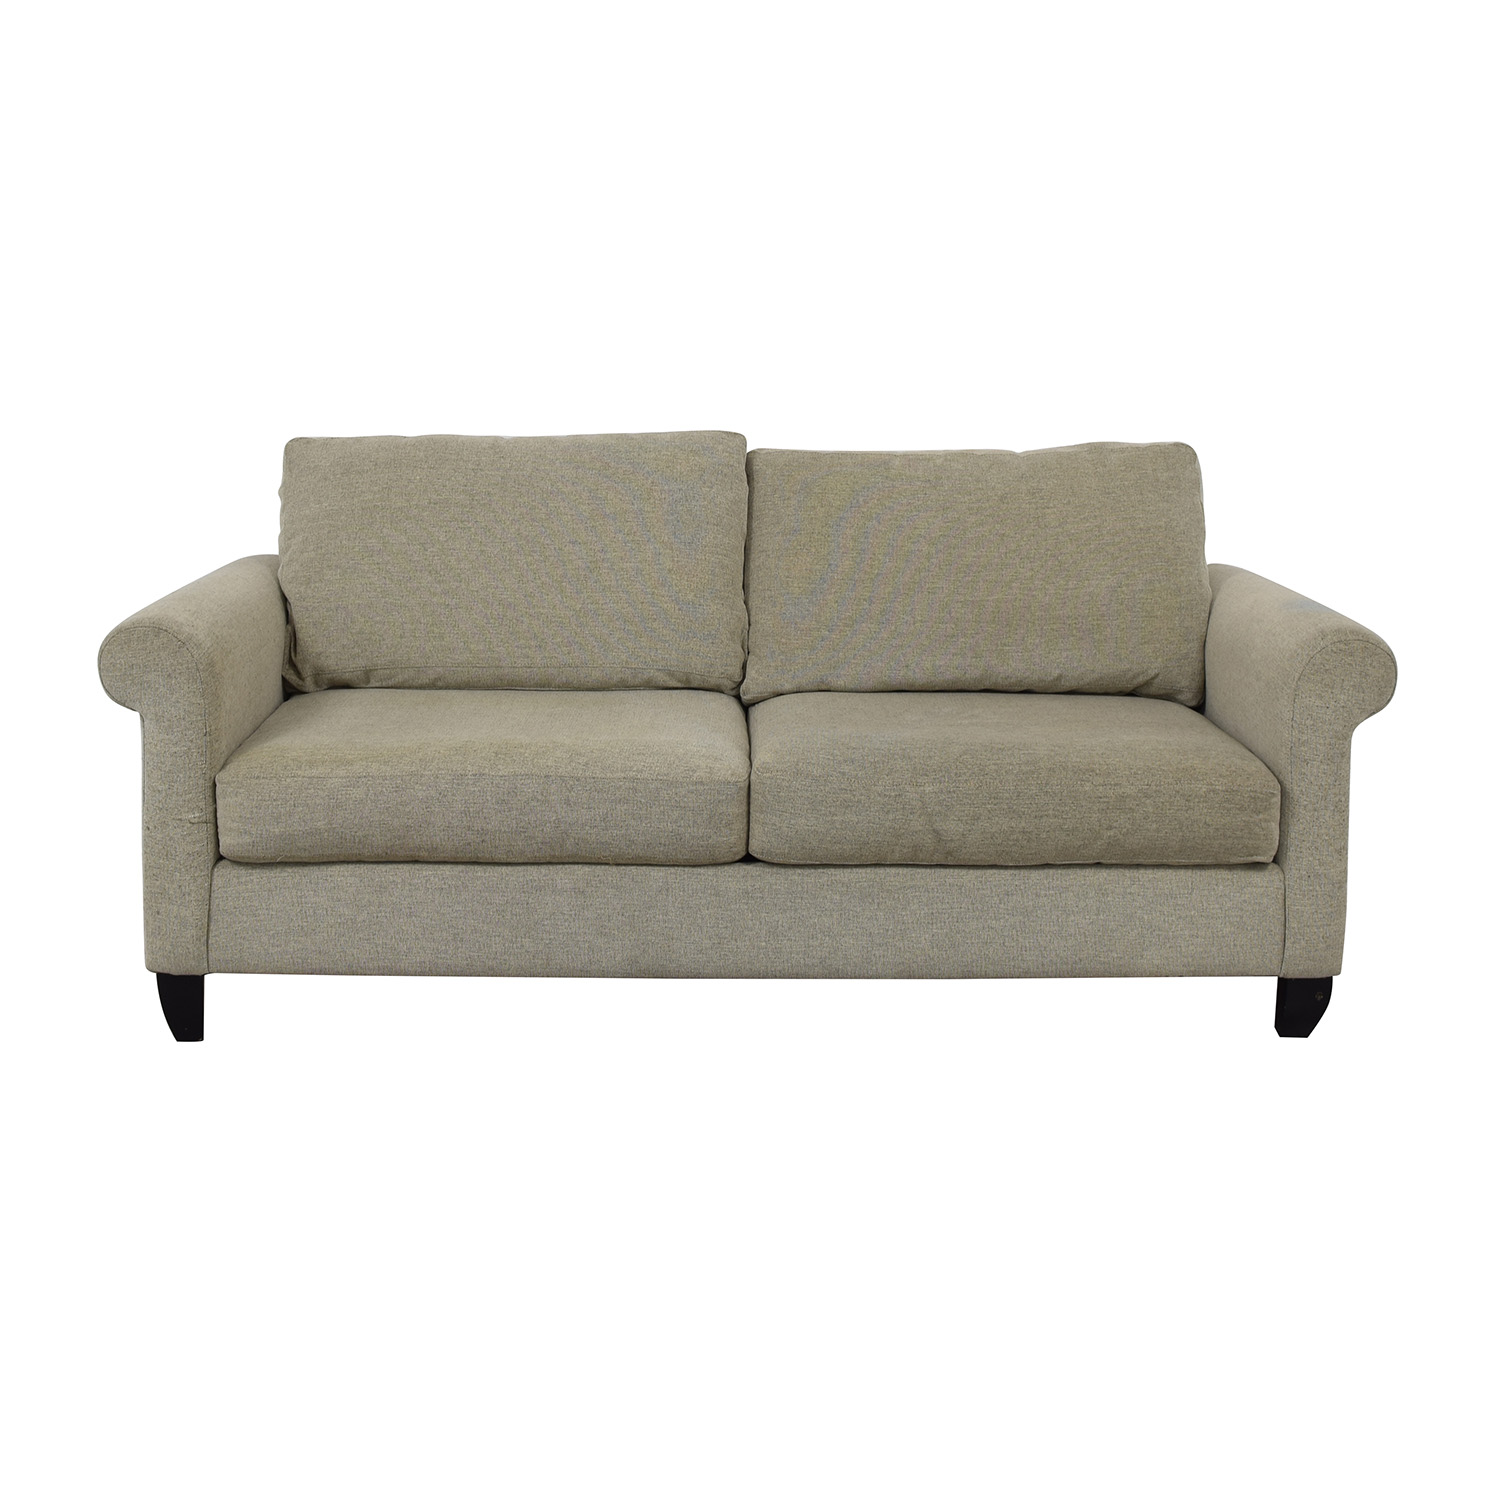 shop Craftmaster Furniture Sofa Craftmaster Furniture